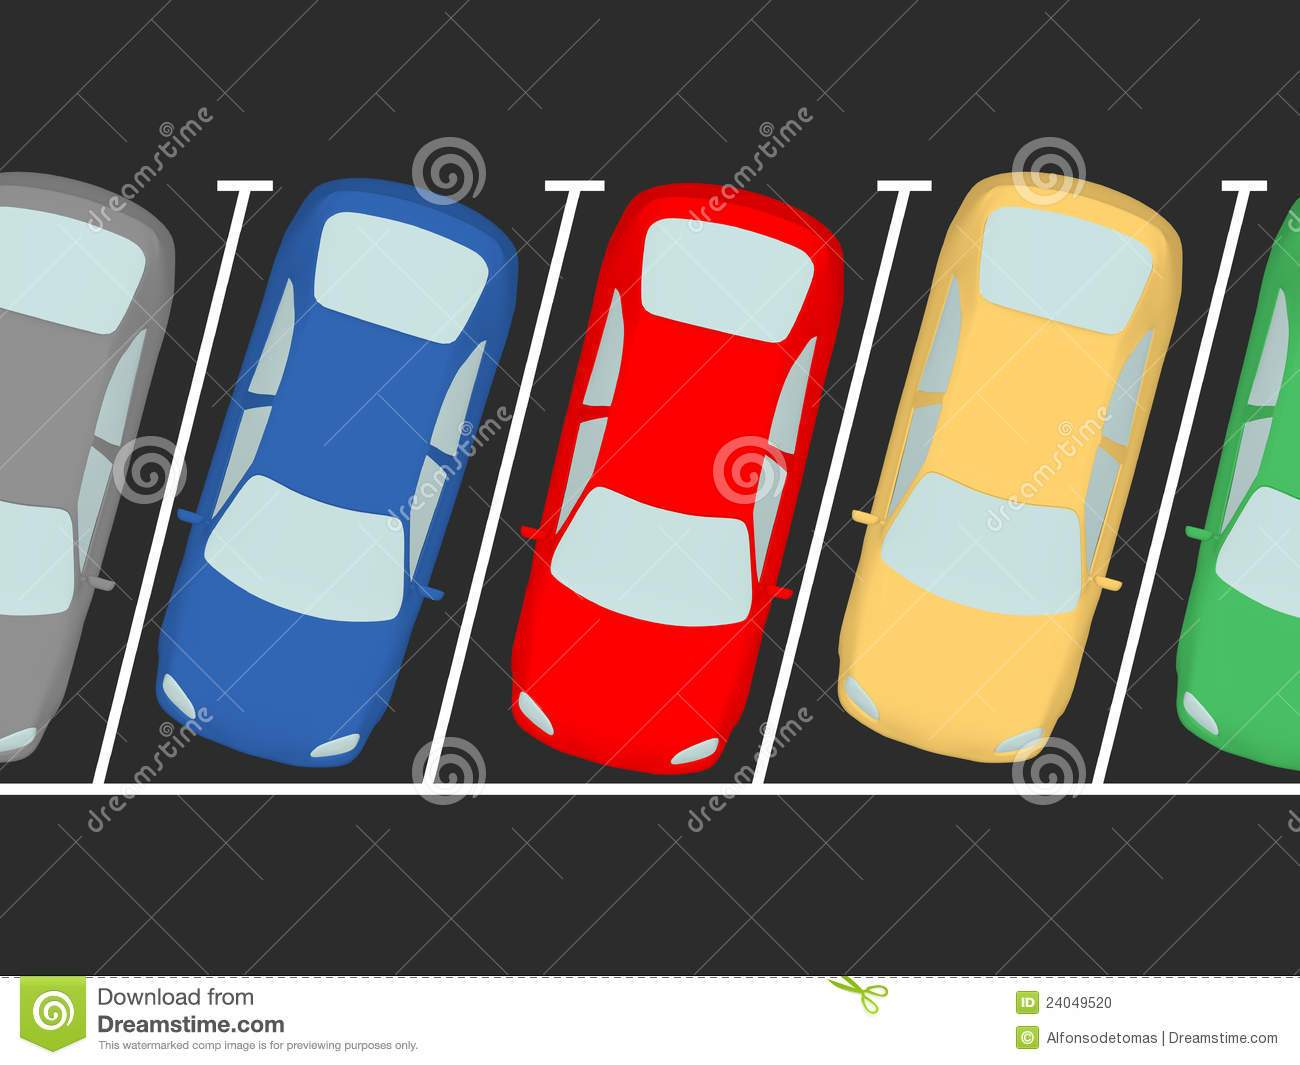 Parked cars clipart » Clipart Portal.